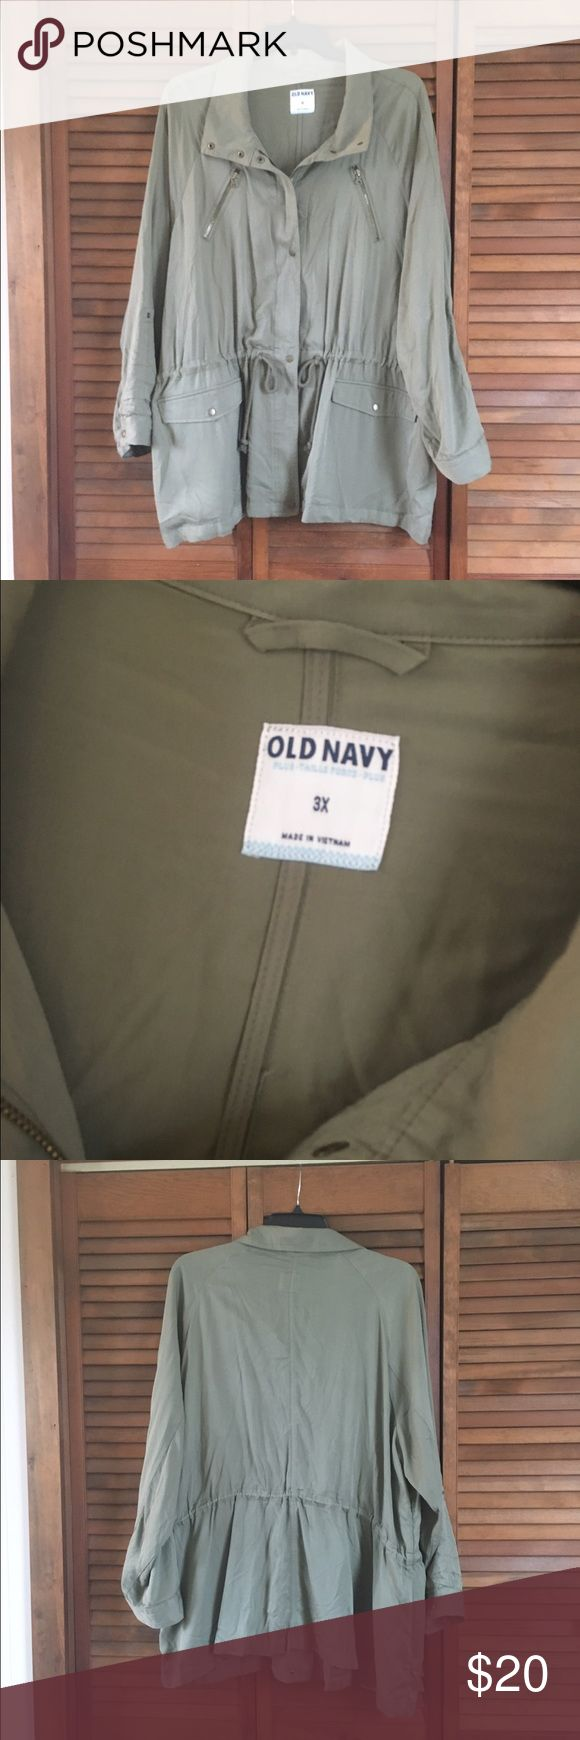 Khaki green utility jacket Worn once, loose fit khaki green utility jacket. Super trendy. Sleeves can be worn up or down Old Navy Jackets & Coats Utility Jackets